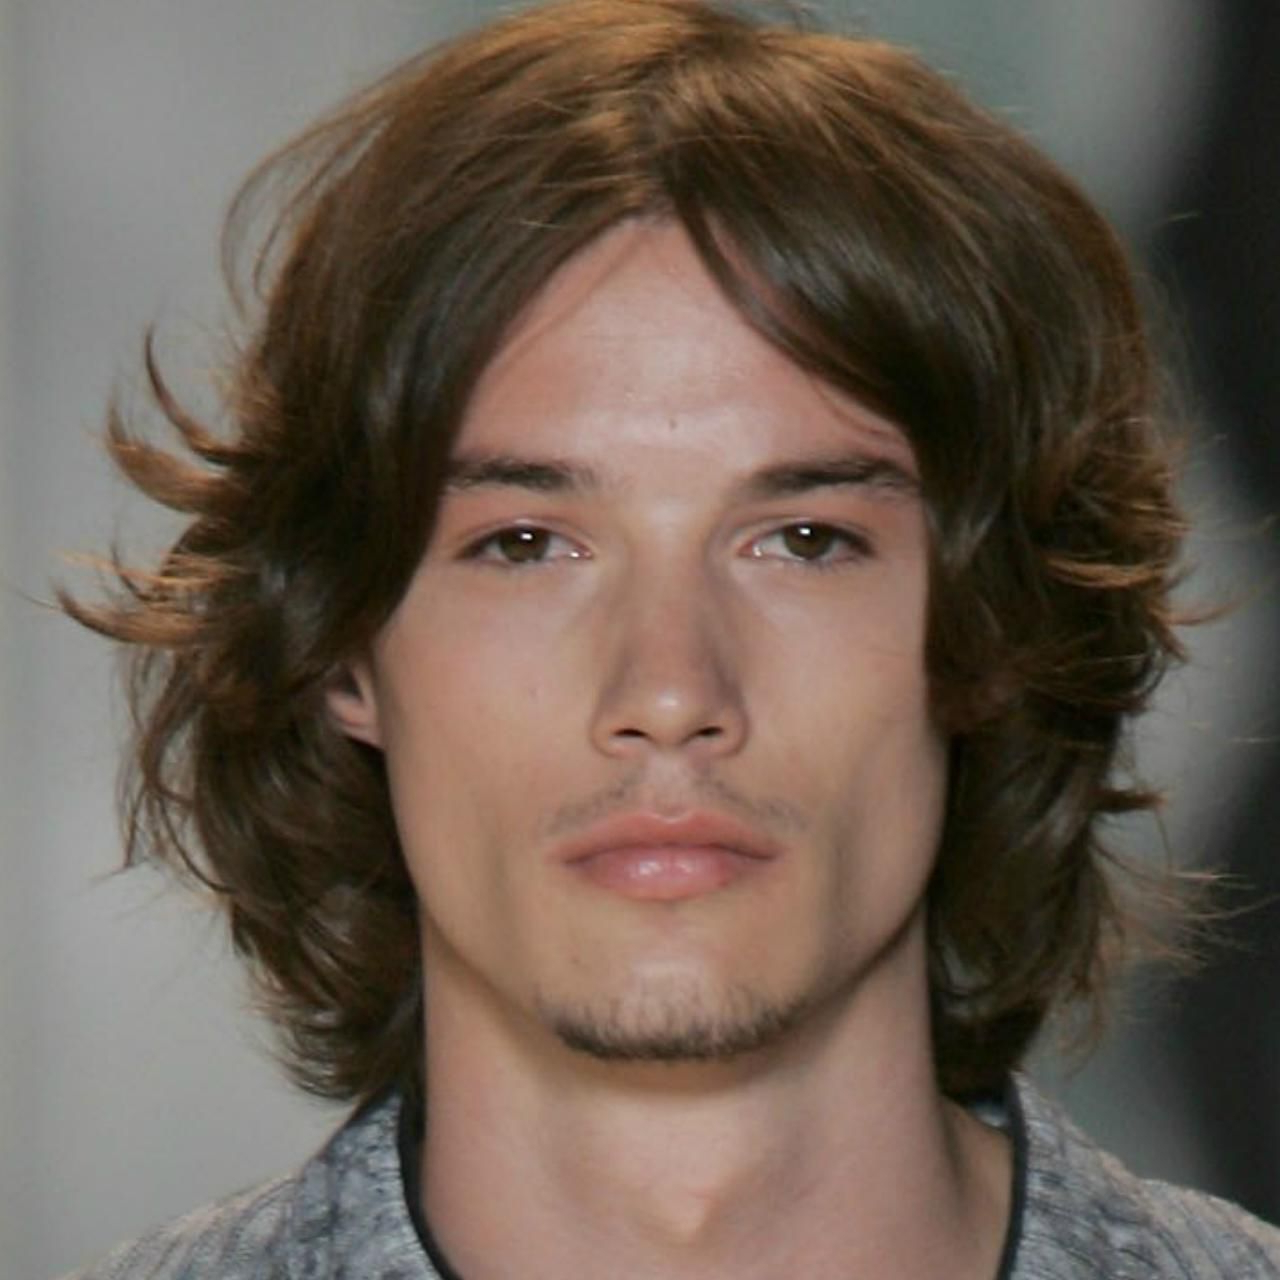 Widely Used Eye Covering Bangs Asian Hairstyles Inside Long Hairstyles For Men Picture Gallery (Gallery 18 of 20)